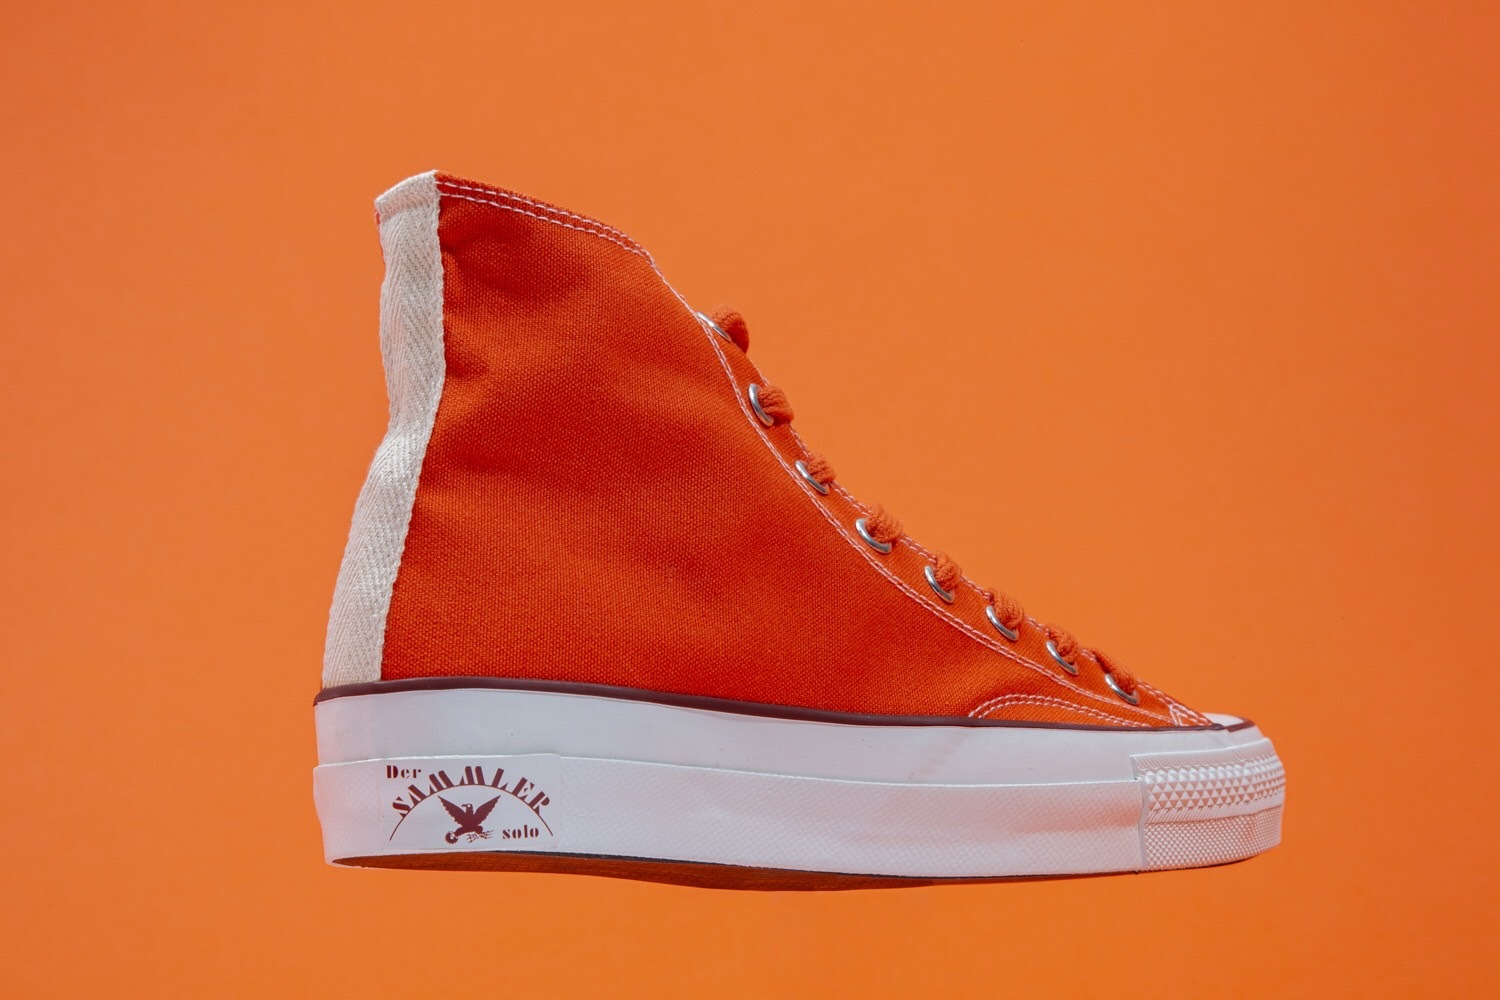 """Re: Der SAMMLER solo × TheThreeRobbers ARMY GYM SHOES HI ORANGE #4\""ってこんなこと。_c0140560_14405407.jpg"